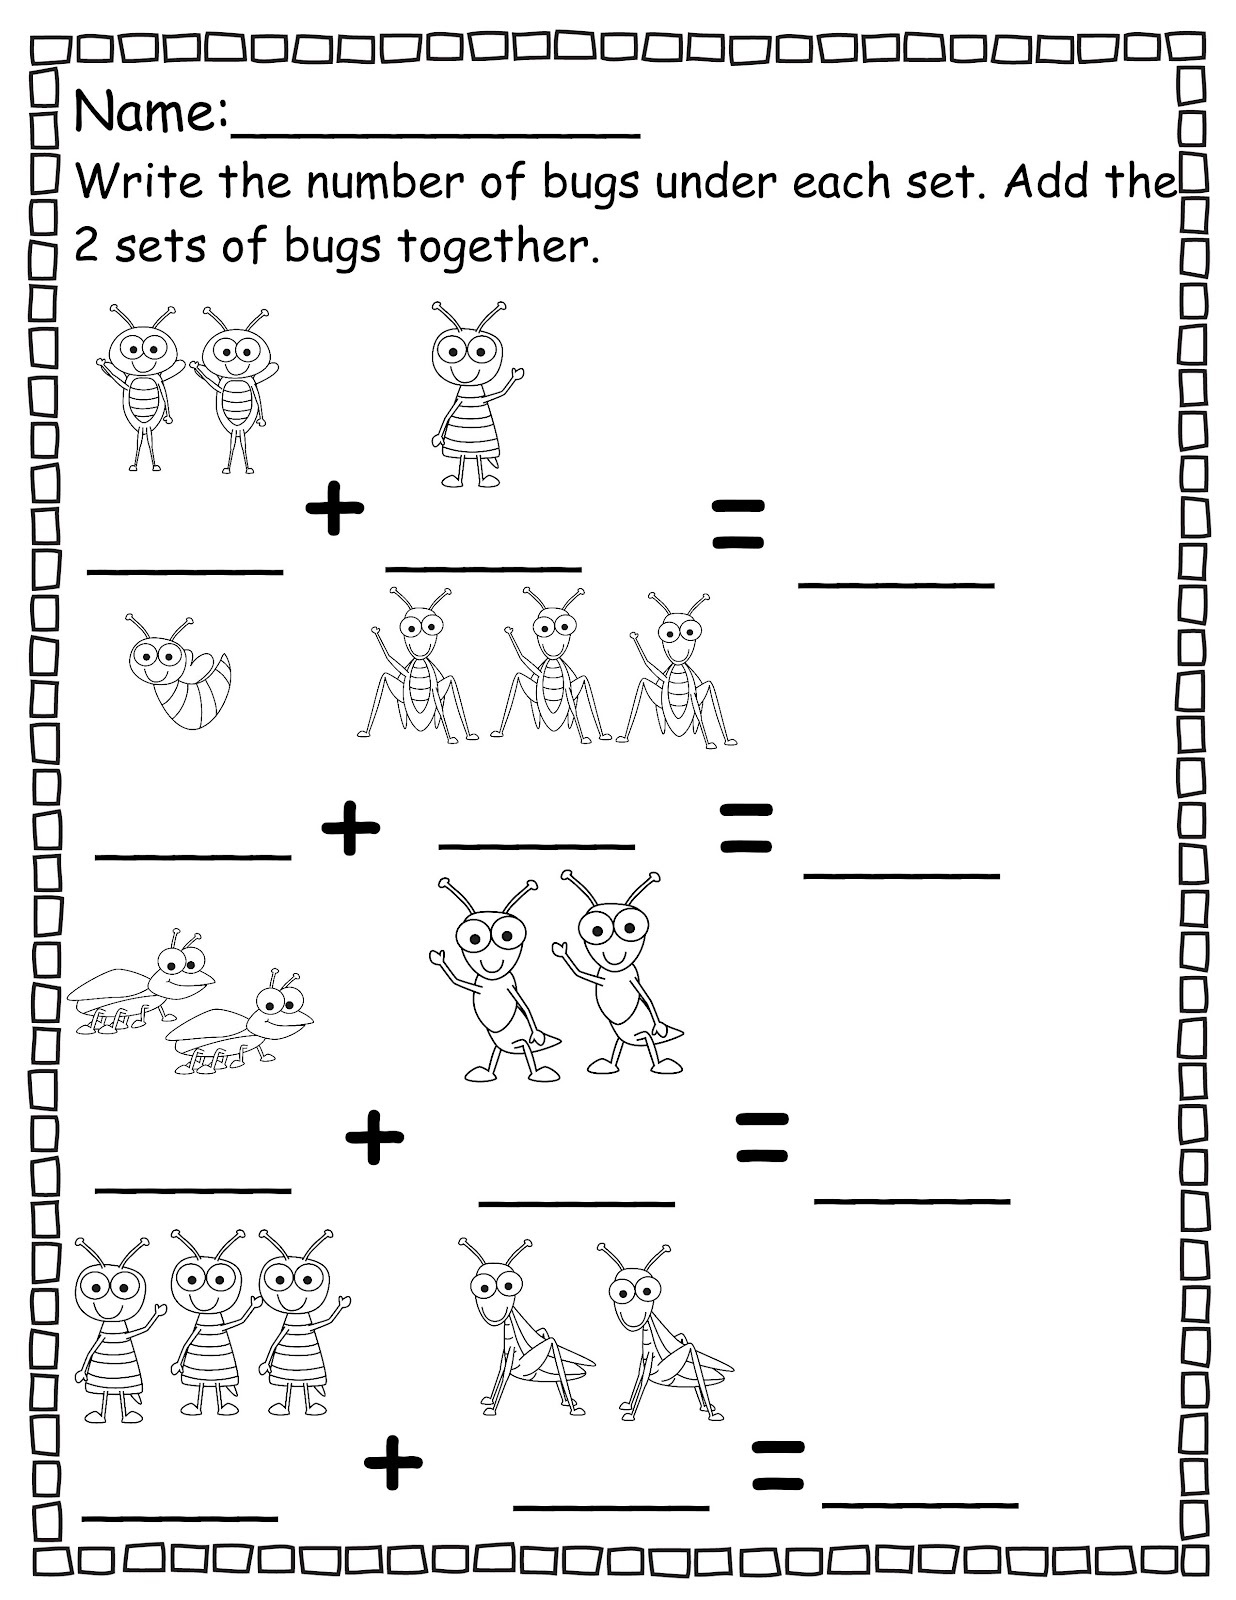 Worksheet Pre K Writing Worksheets Grass Fedjp Worksheet